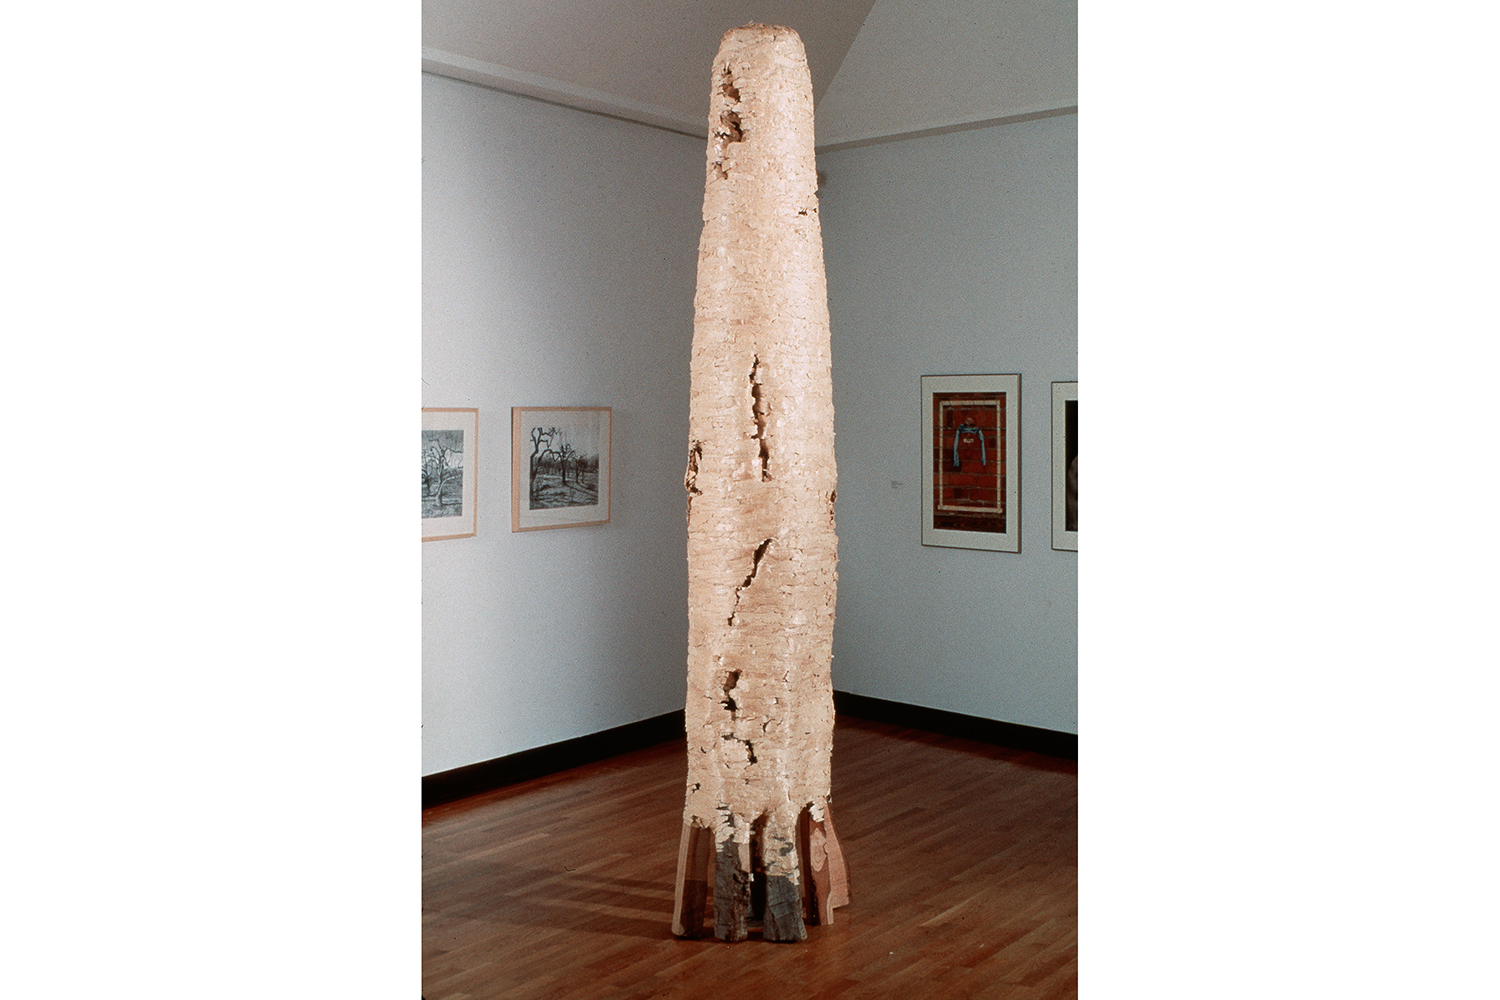 Cypress natural art sculpture from Donna Forma